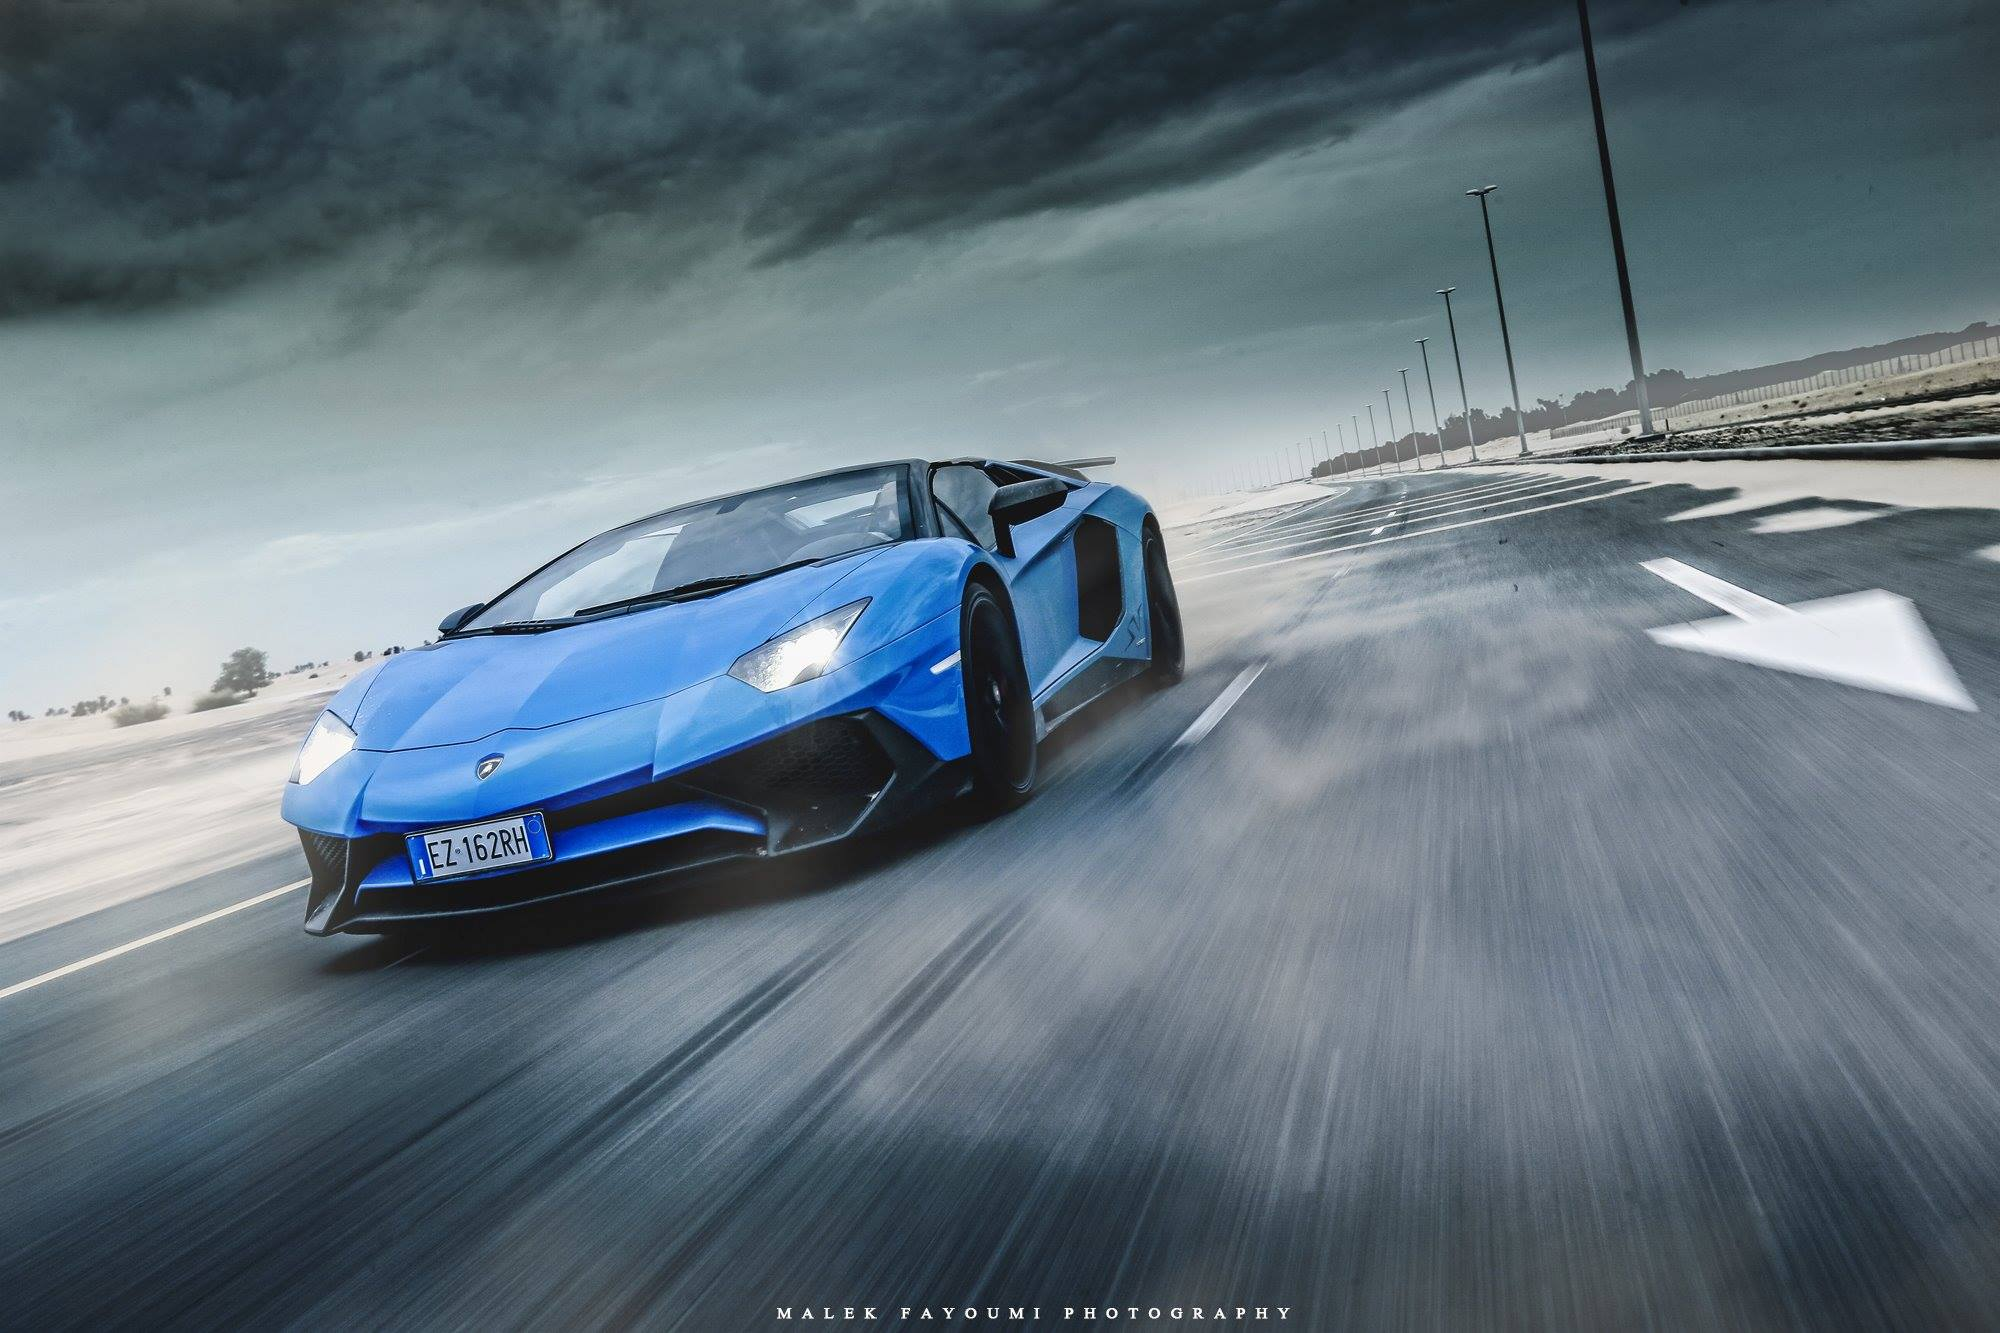 Here Is Another Amazing Picture Of The Lamborghini Aventador Sv